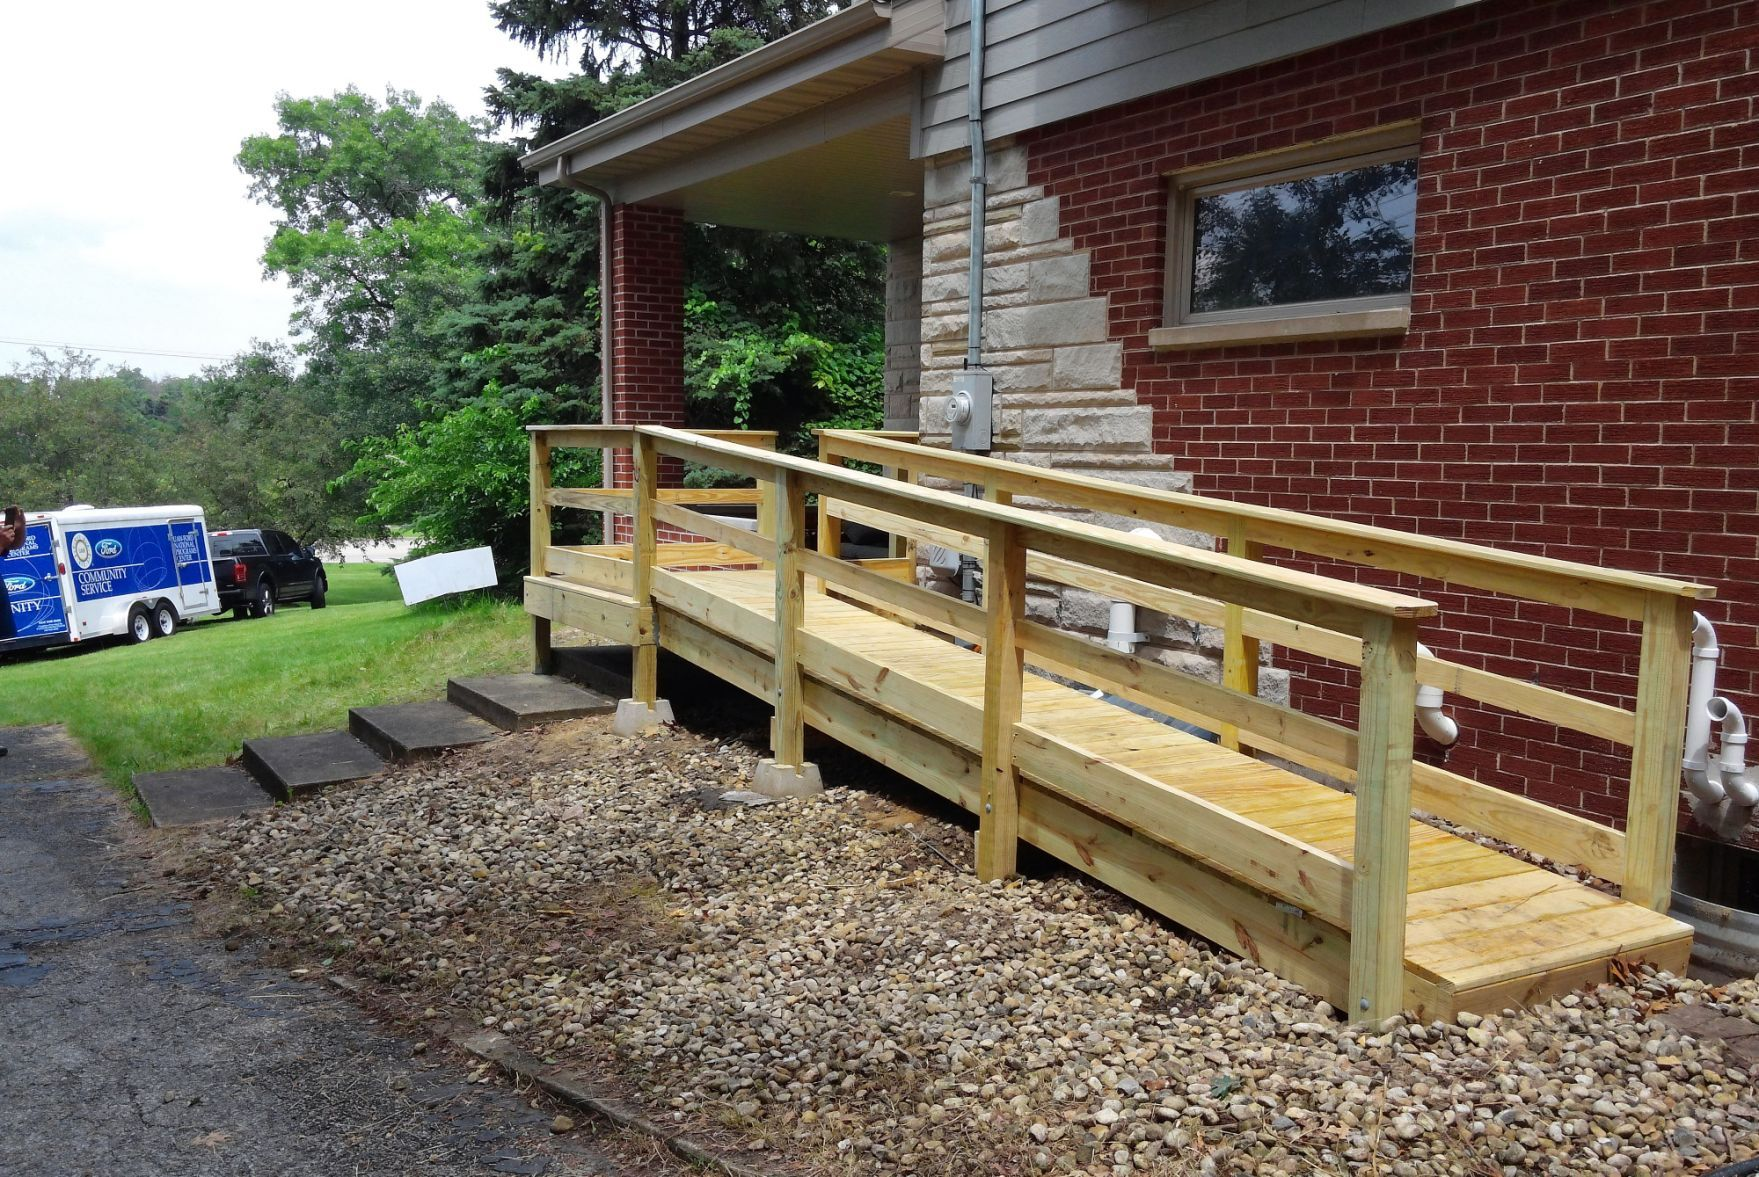 UAW Volunteers Build Wheelchair Ramp For Youngster